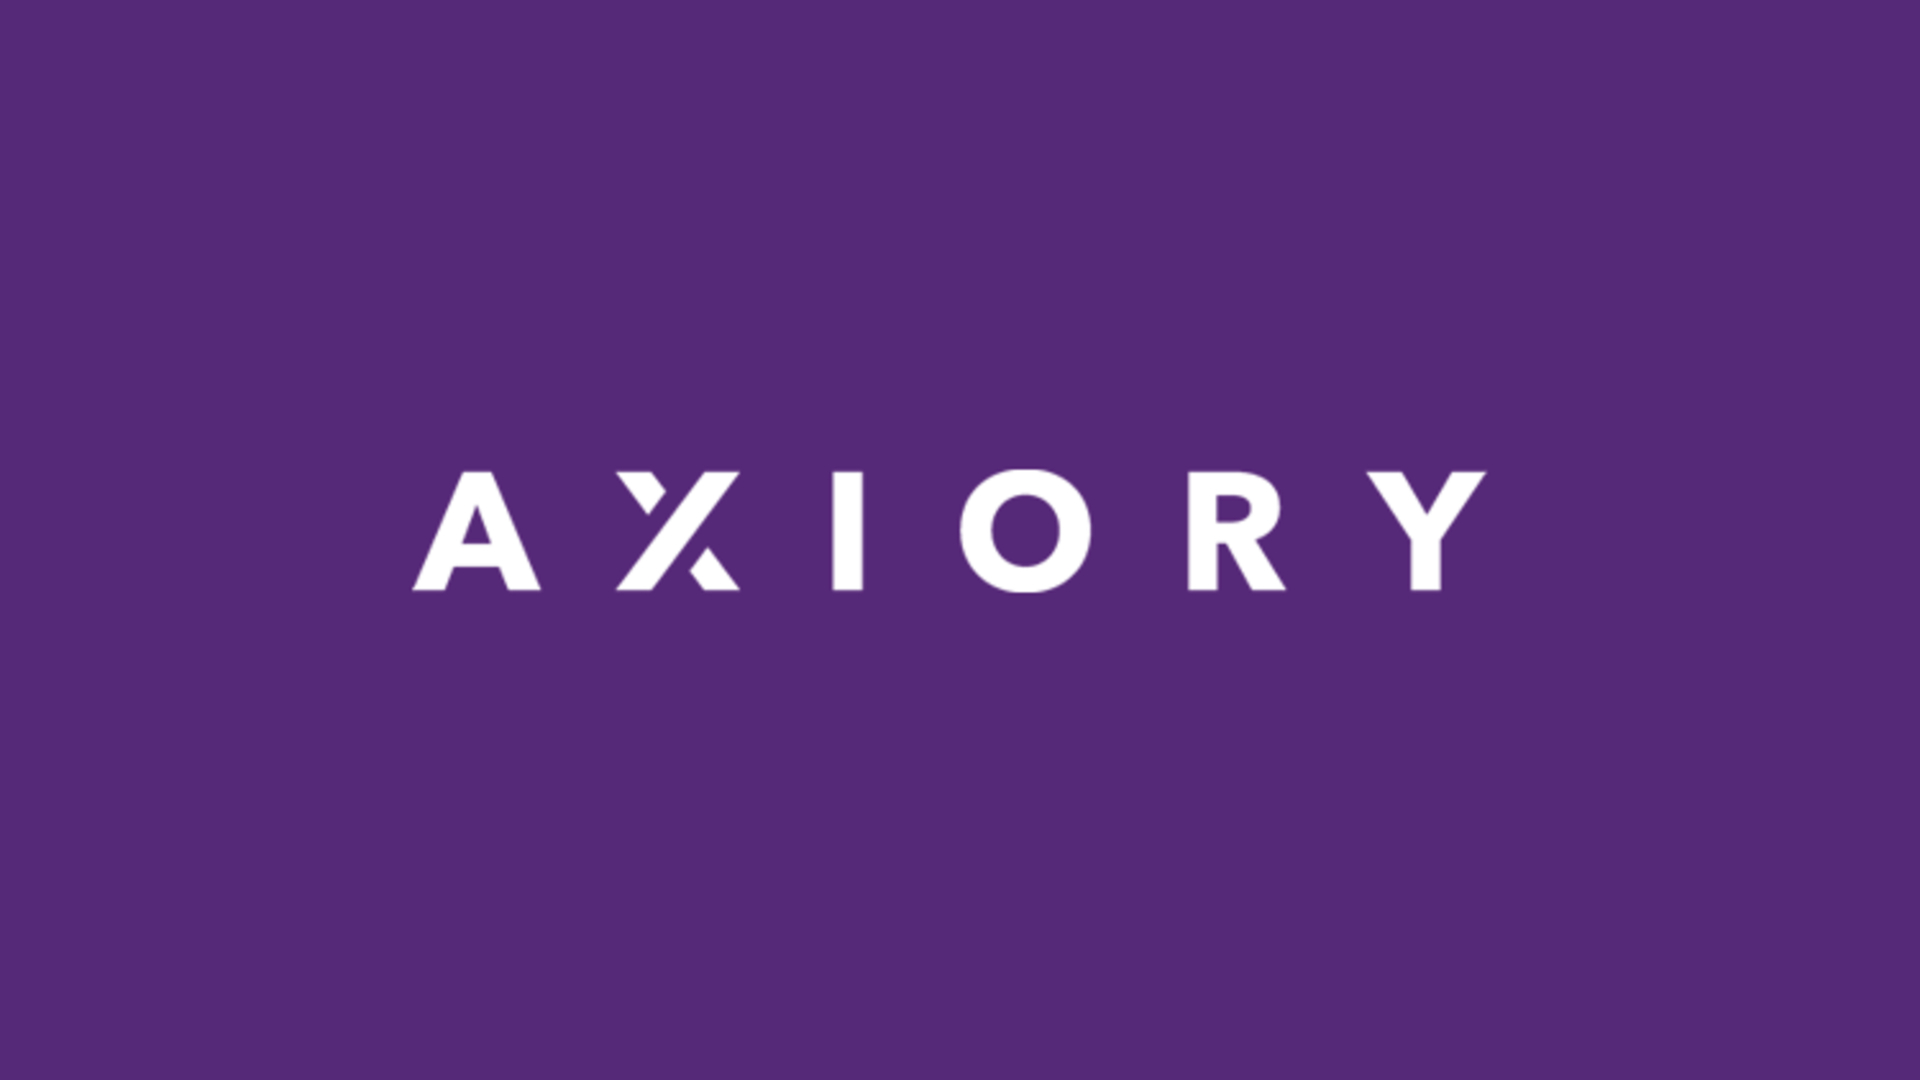 Read this review to find out if Axiory is legit FX broker